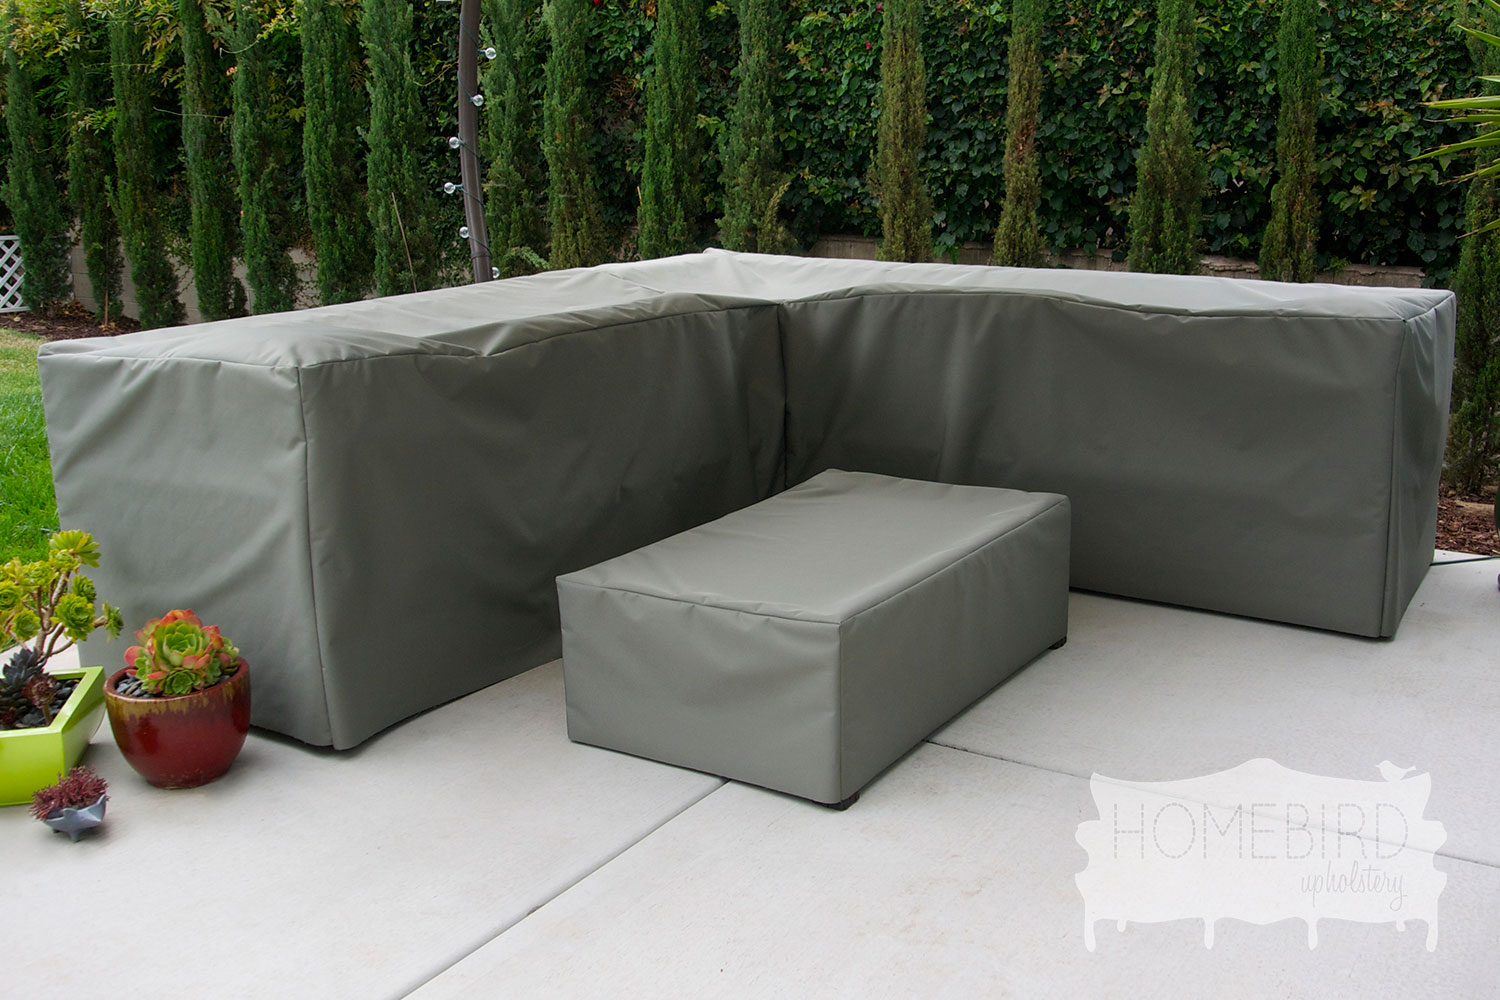 Custom order patio furniture covers lucky little for Patio furniture covers